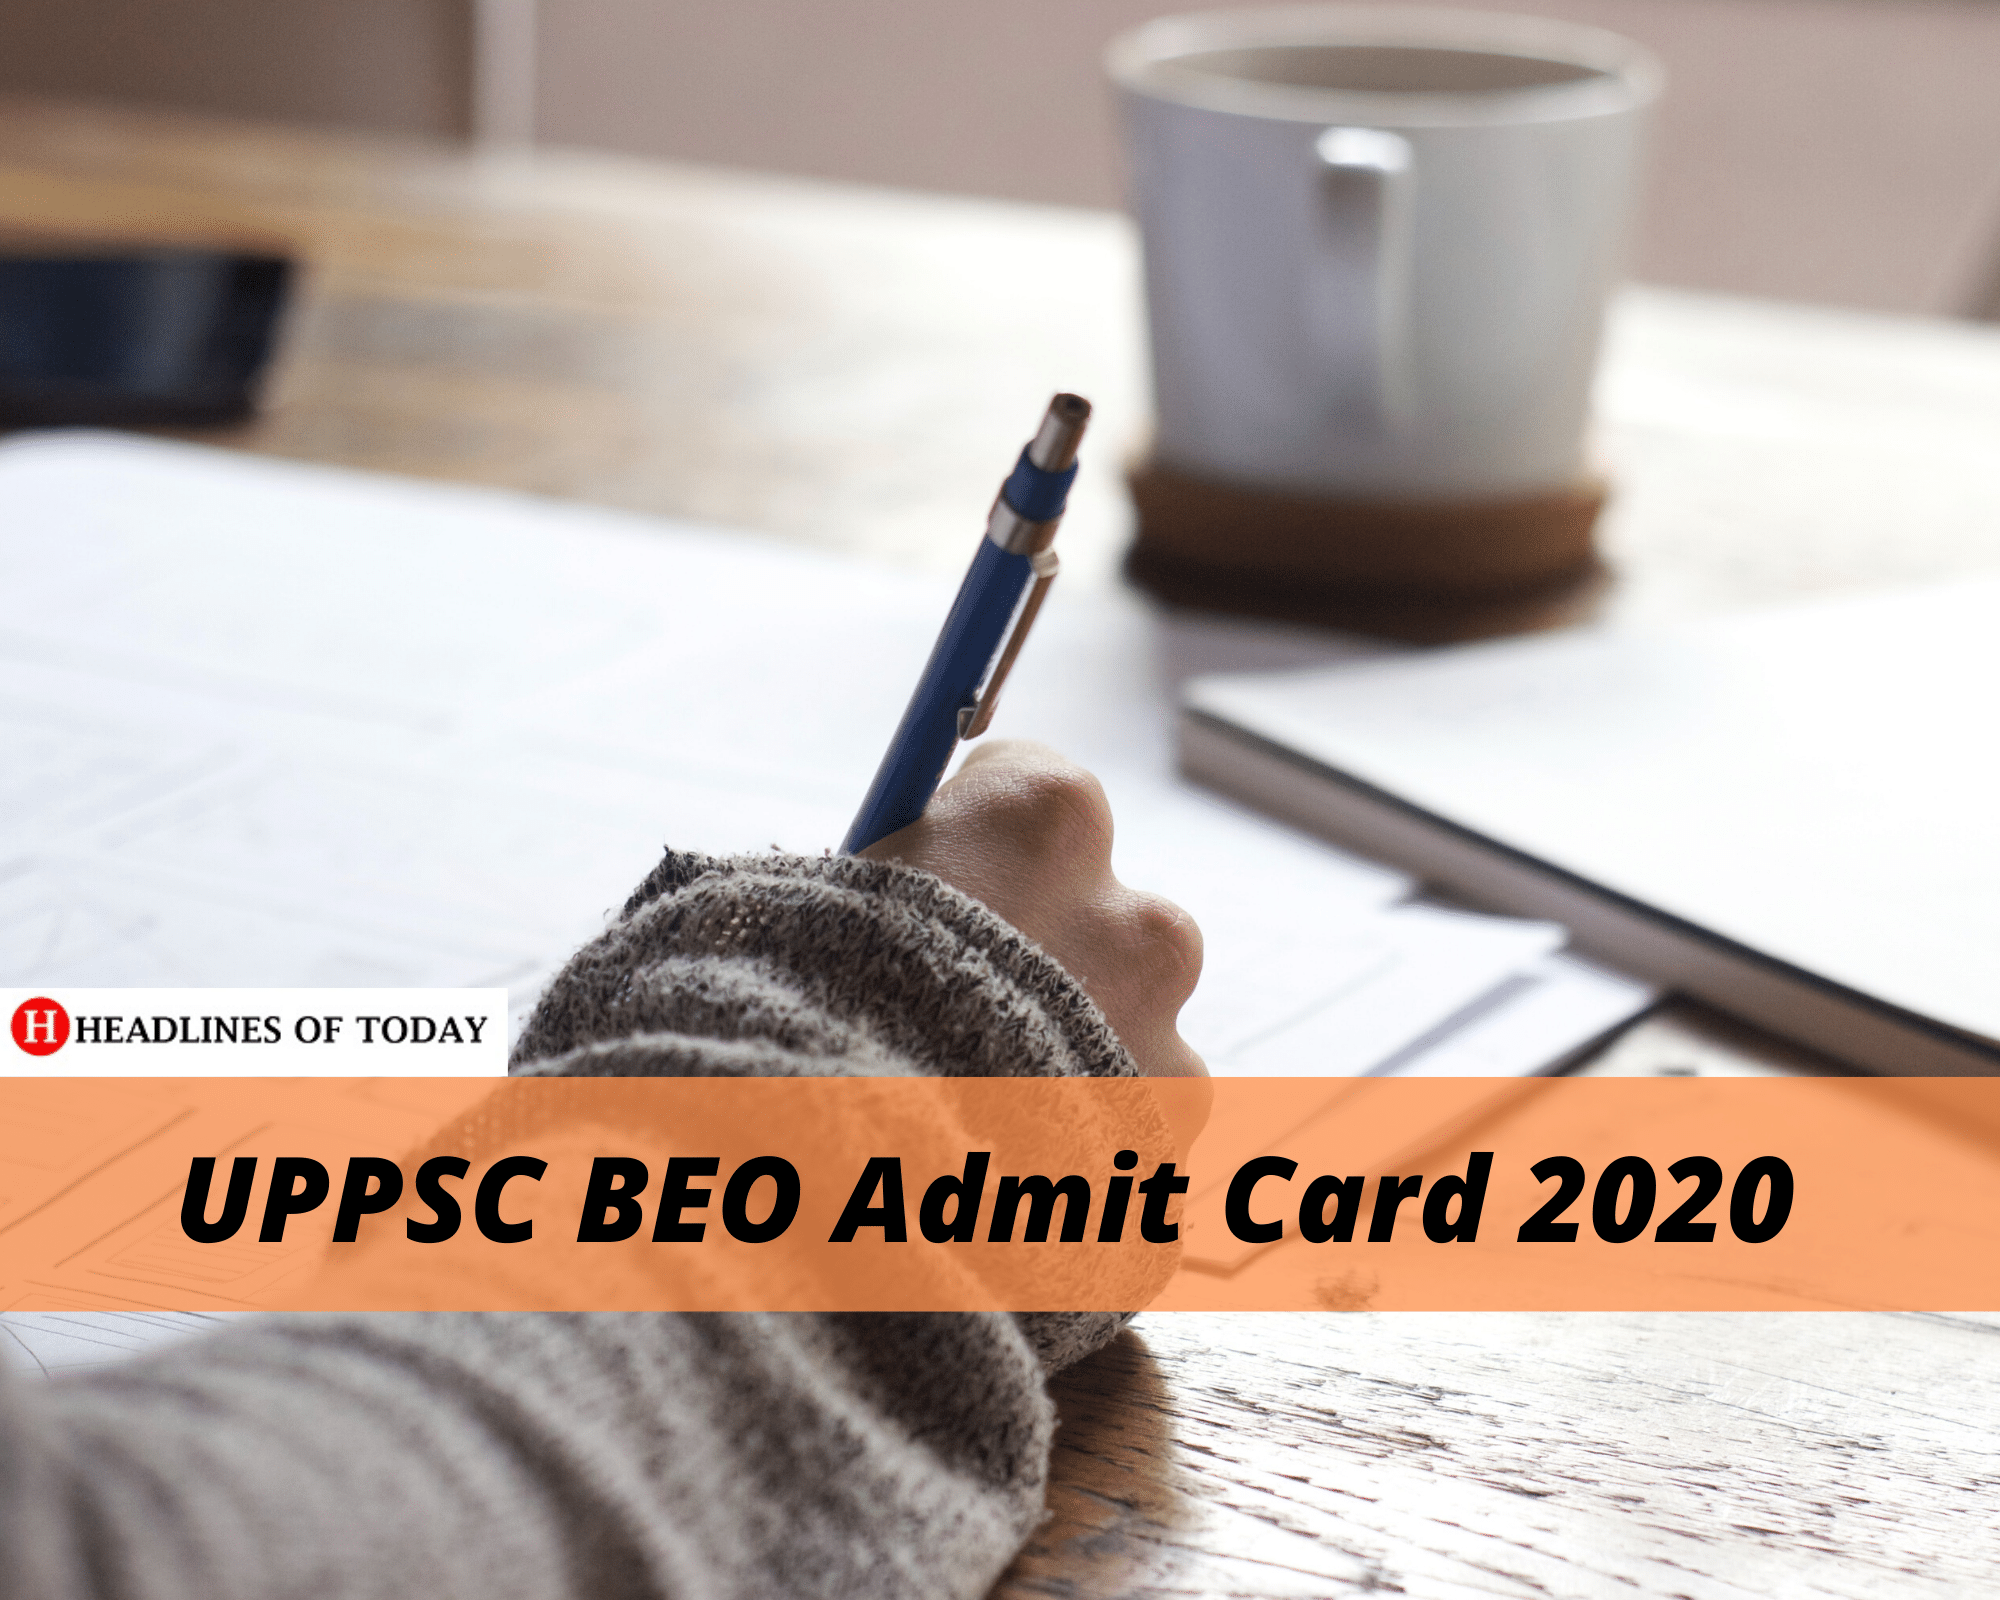 Photo of UPPSC BEO Admit Card 2020 Released: Check Exam Date, Pattern & Syllabus